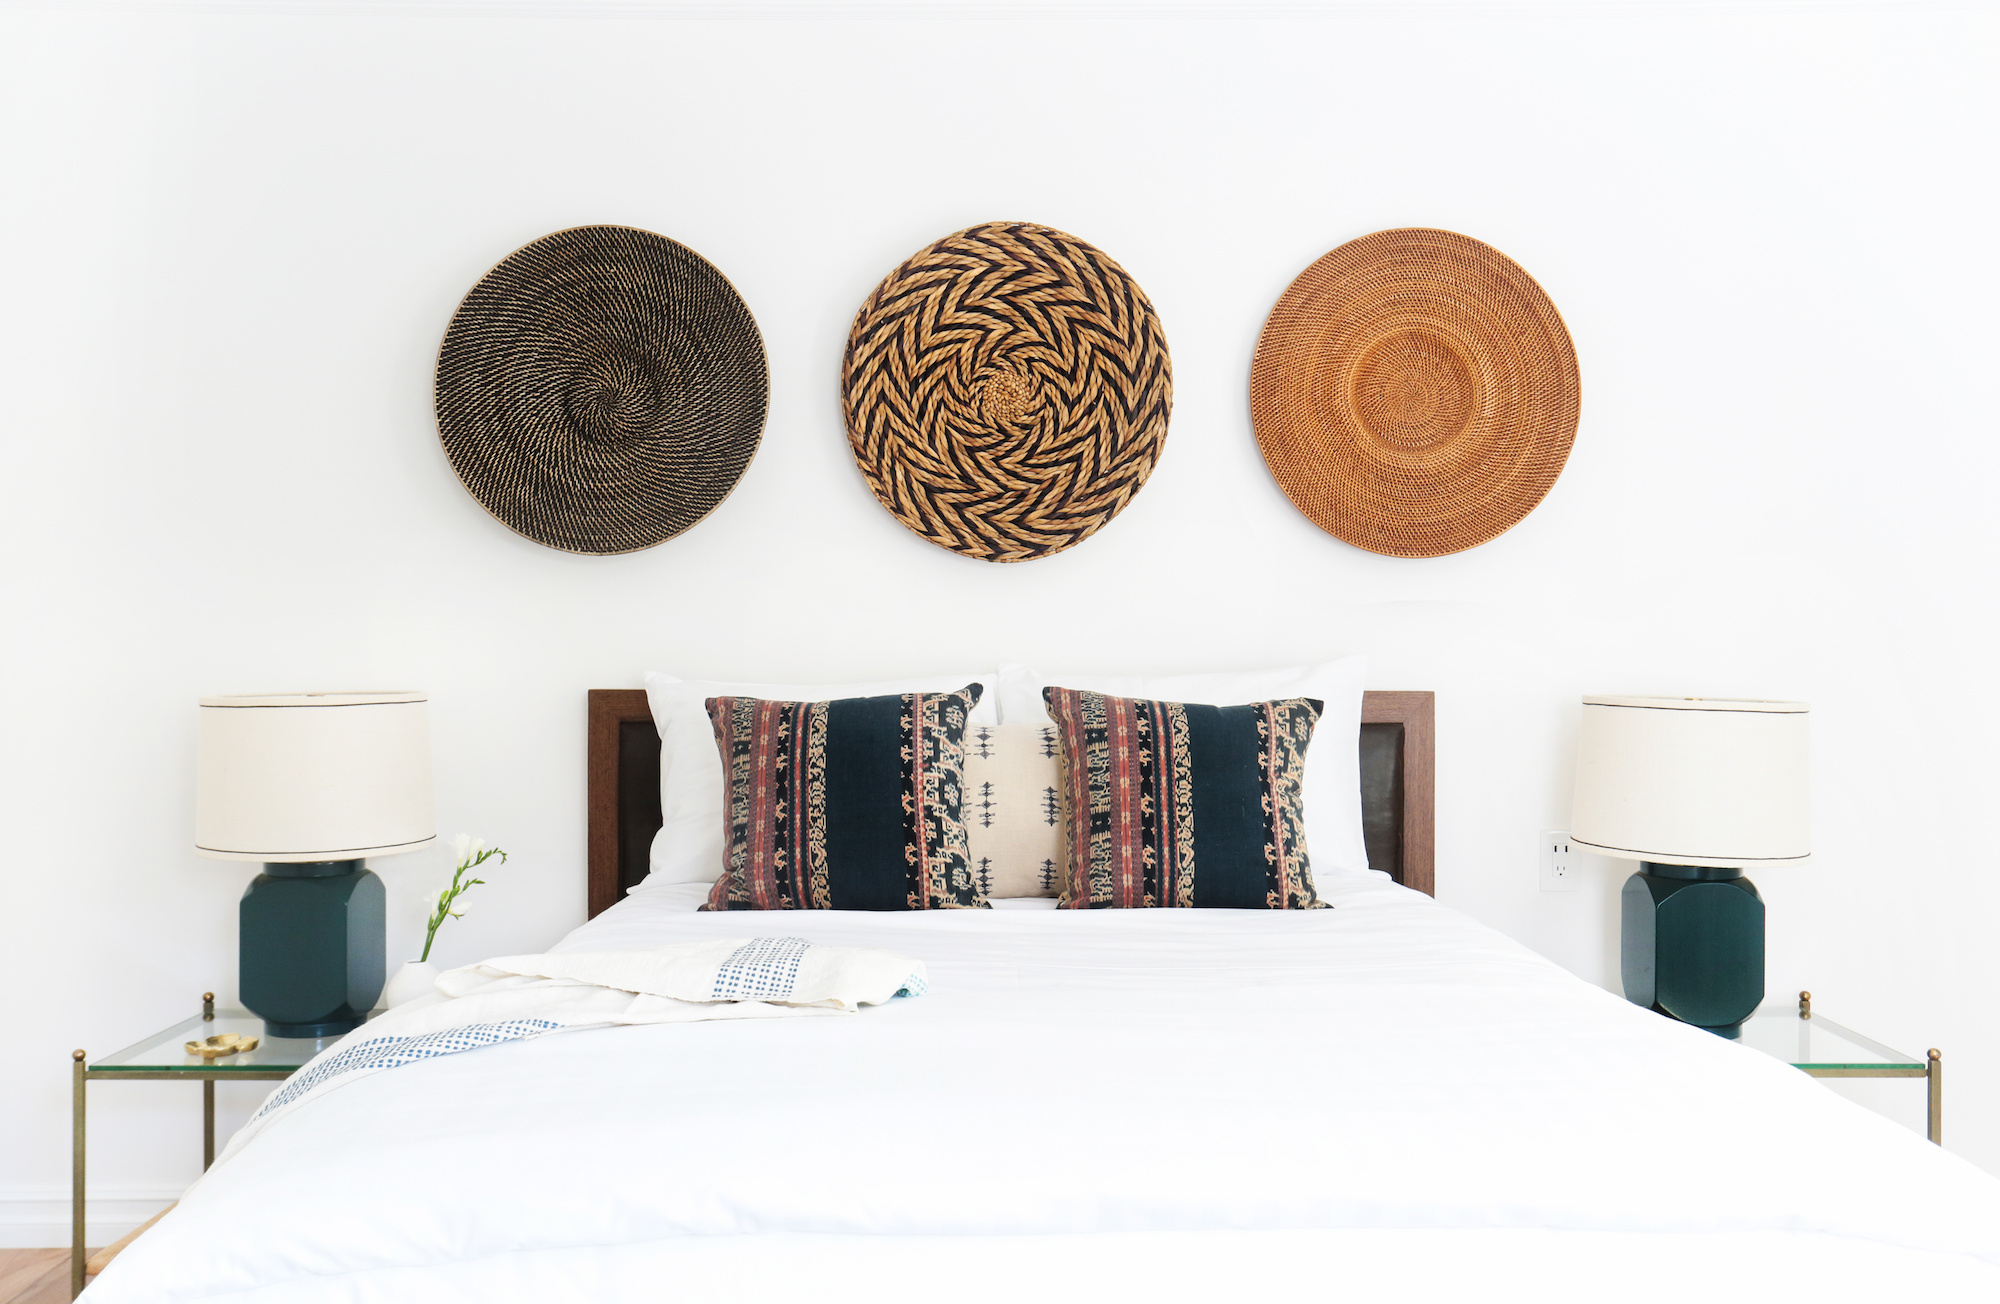 25 Travel-Inspired Spaces - Nothing inspires interior design more than traveling the world and finding influences in other people, cultures, and customs. See some of our favorite rooms crafted with influences from around the globe, including Moroccan-inspired furnishings, vivid fabric choices, natural textures, and more.